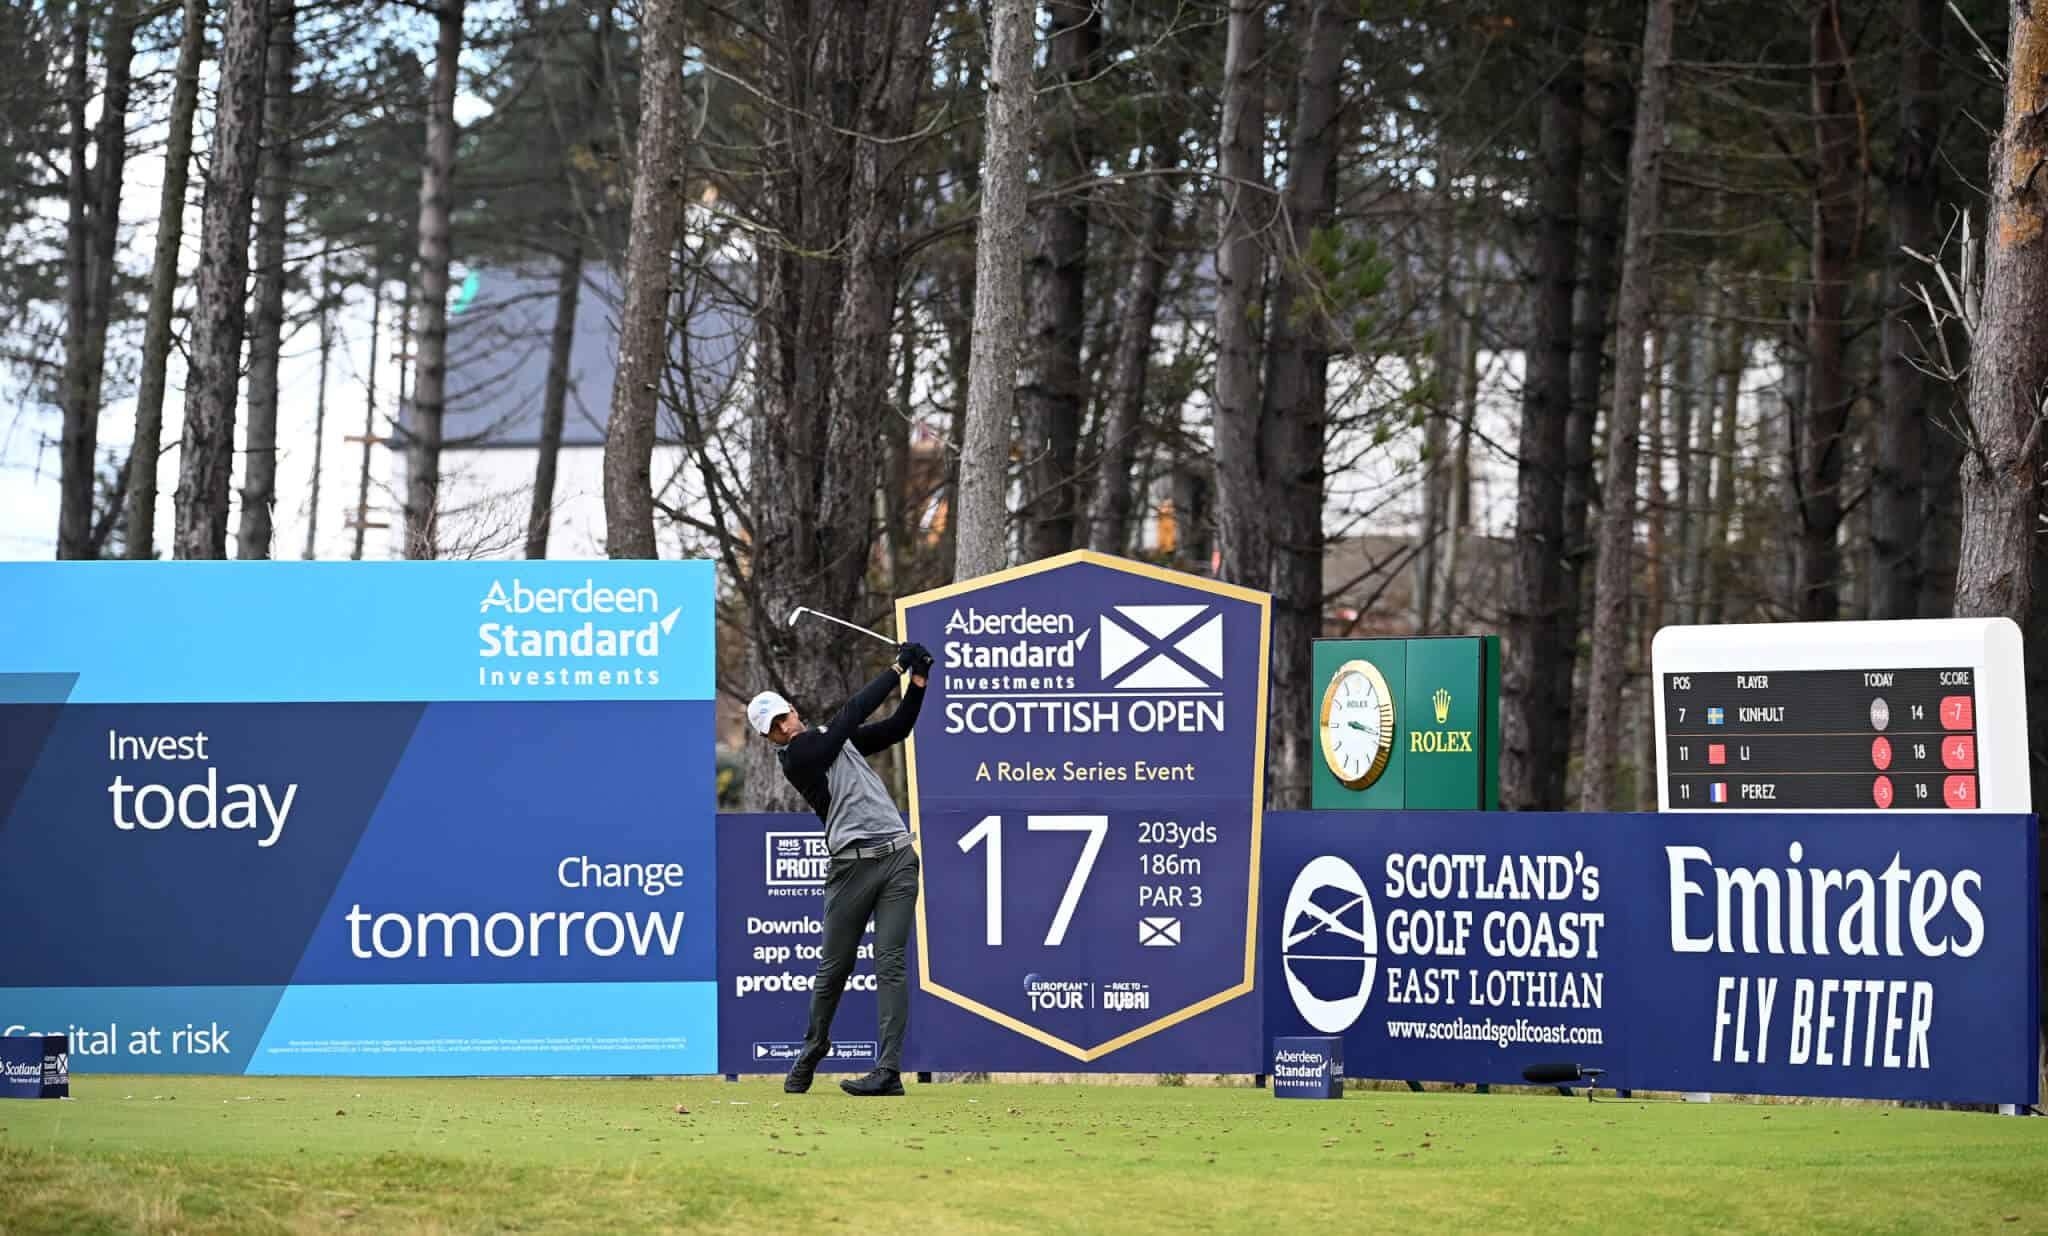 NORTH BERWICK, SCOTLAND - OCTOBER 04: Aaron Rai of England tees off on the 17th hole during the final round of the Aberdeen Standard Investments Scottish Open at The Renaissance Club on October 04, 2020 in North Berwick, Scotland. (Photo by Ross Kinnaird/Getty Images)